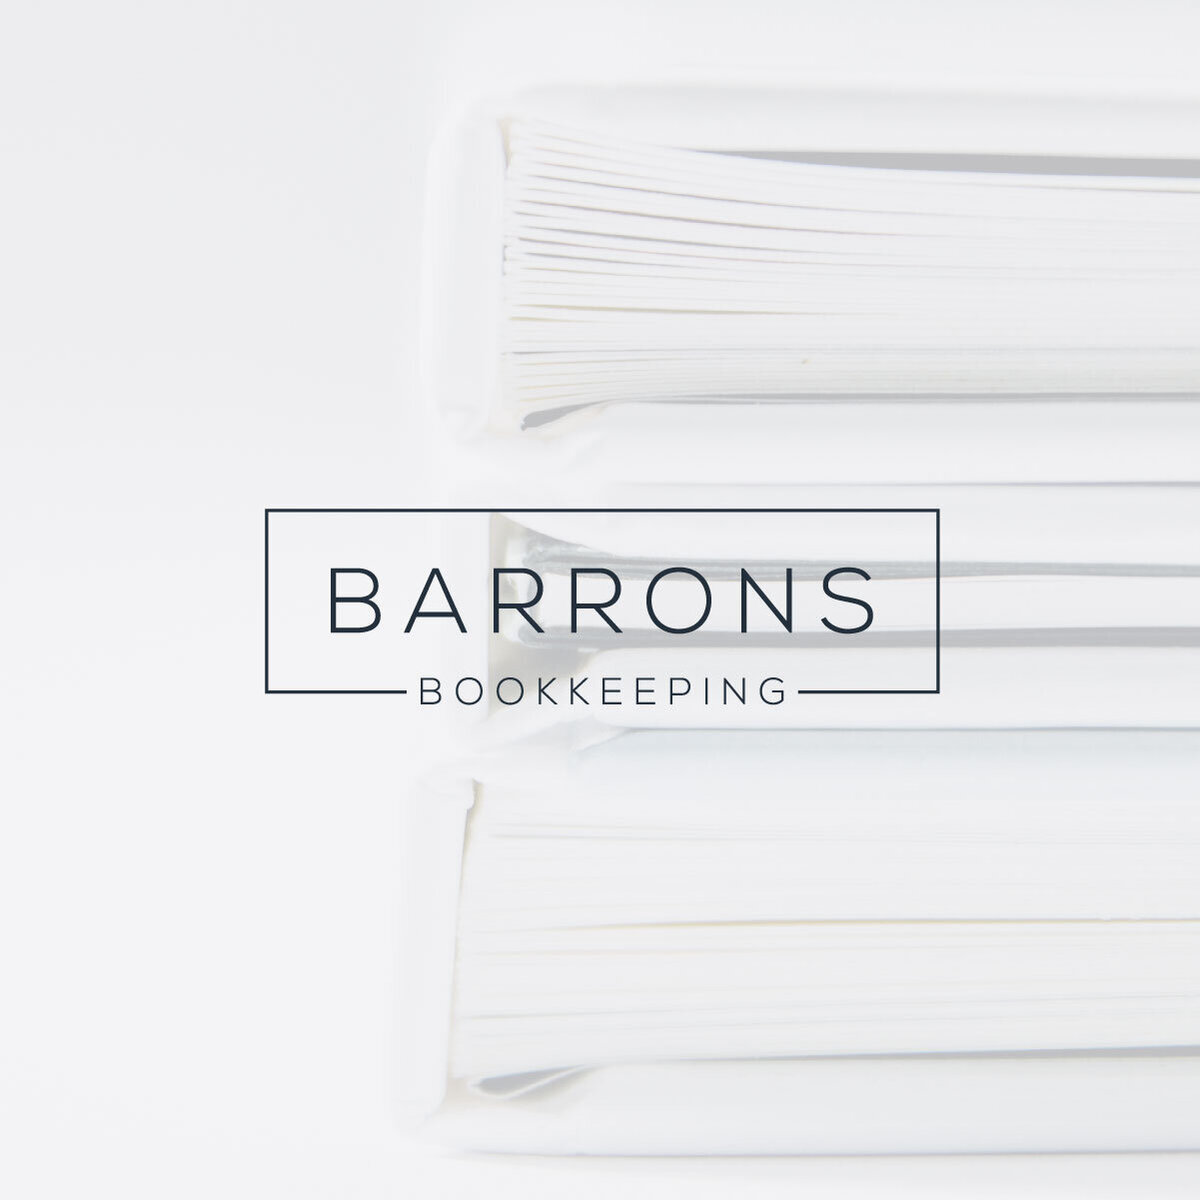 Barrons Bookkeeping Launch Graphics-04 (1)